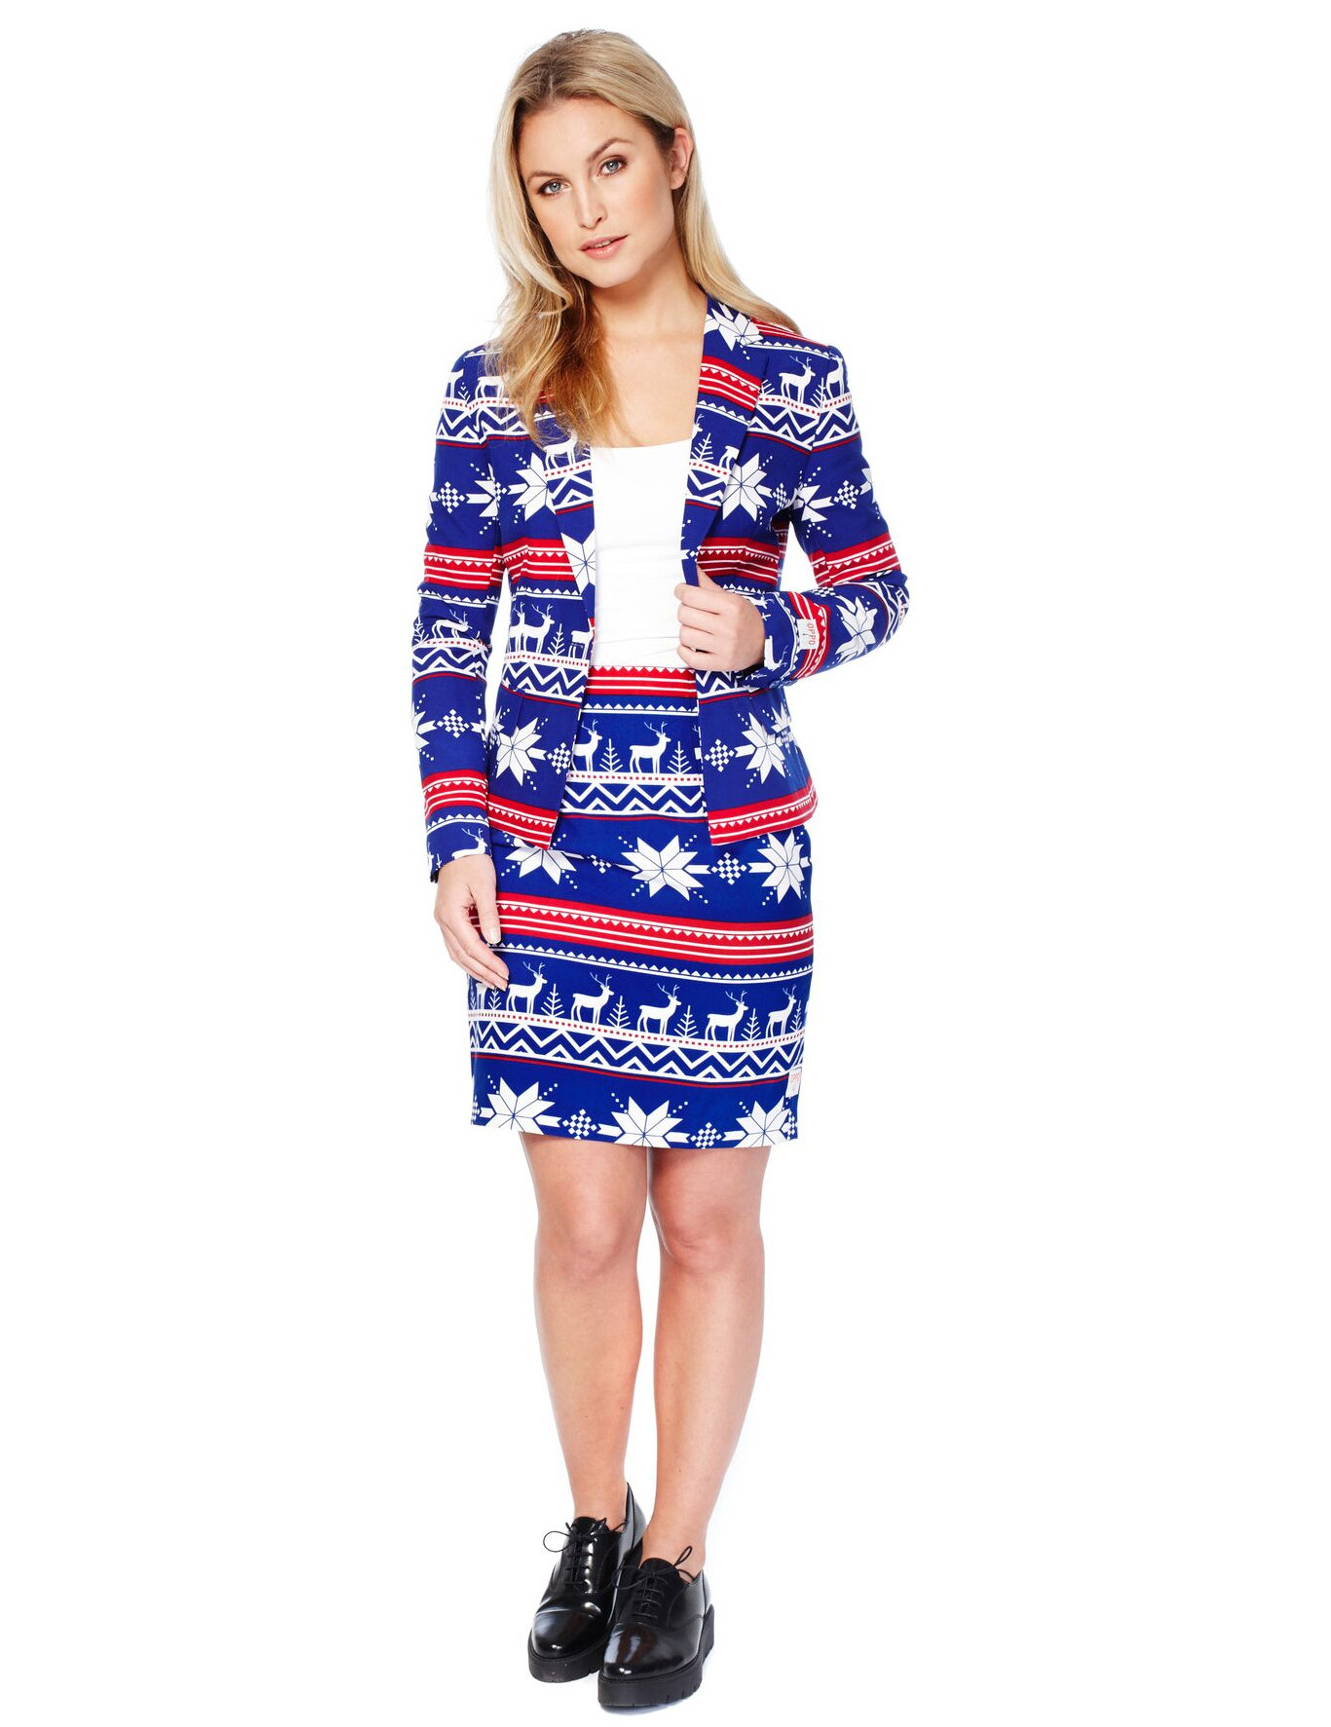 06a5934f090 Costume Mrs. Snow femme Opposuits™   Deguise-toi